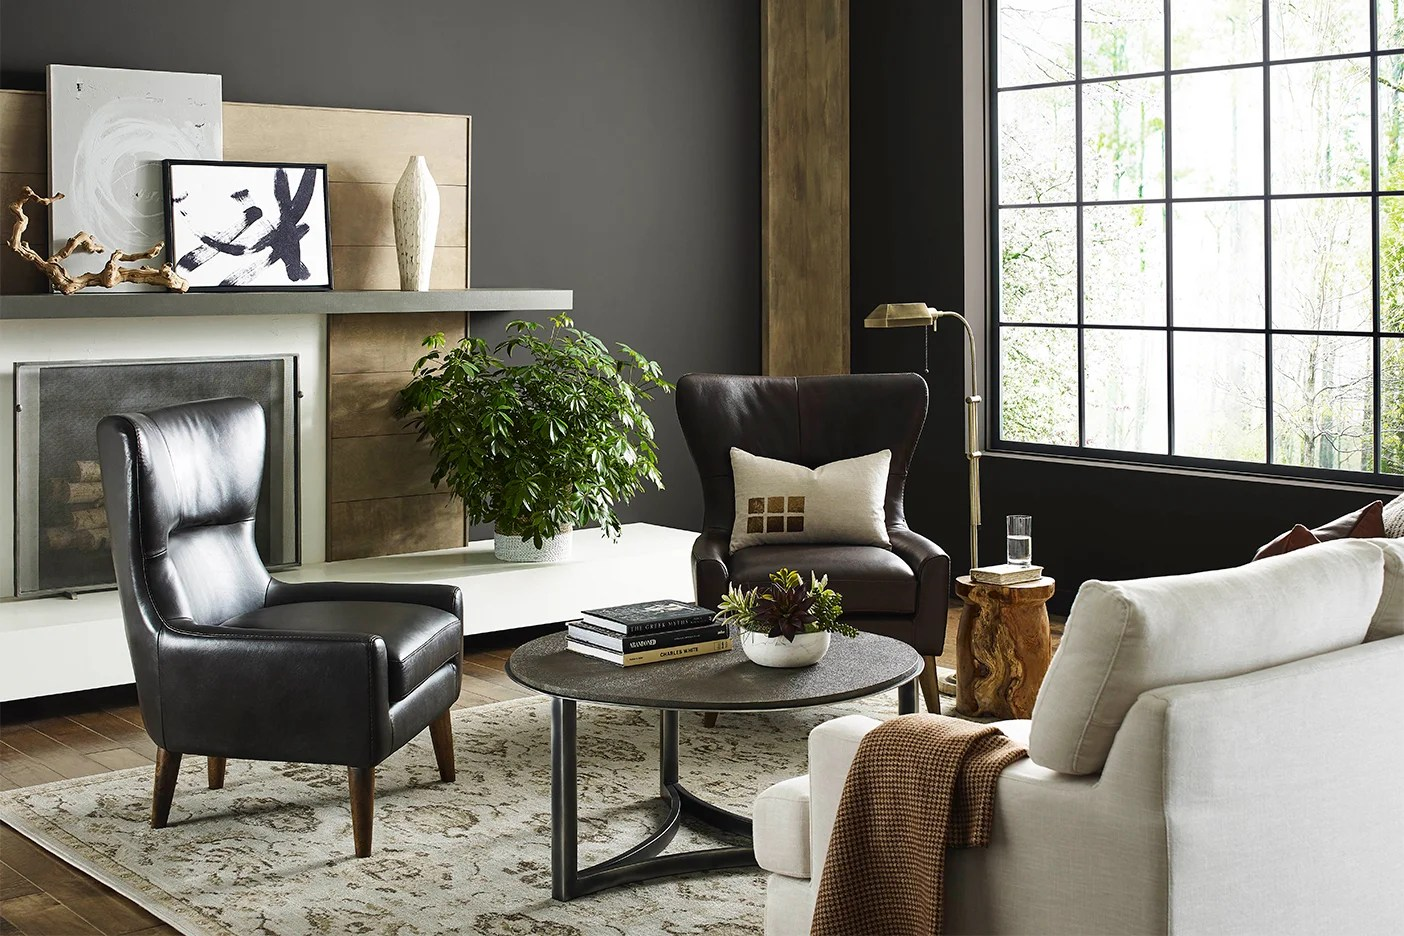 Sherwin Williams Just Announced its 2021 Color of the Year